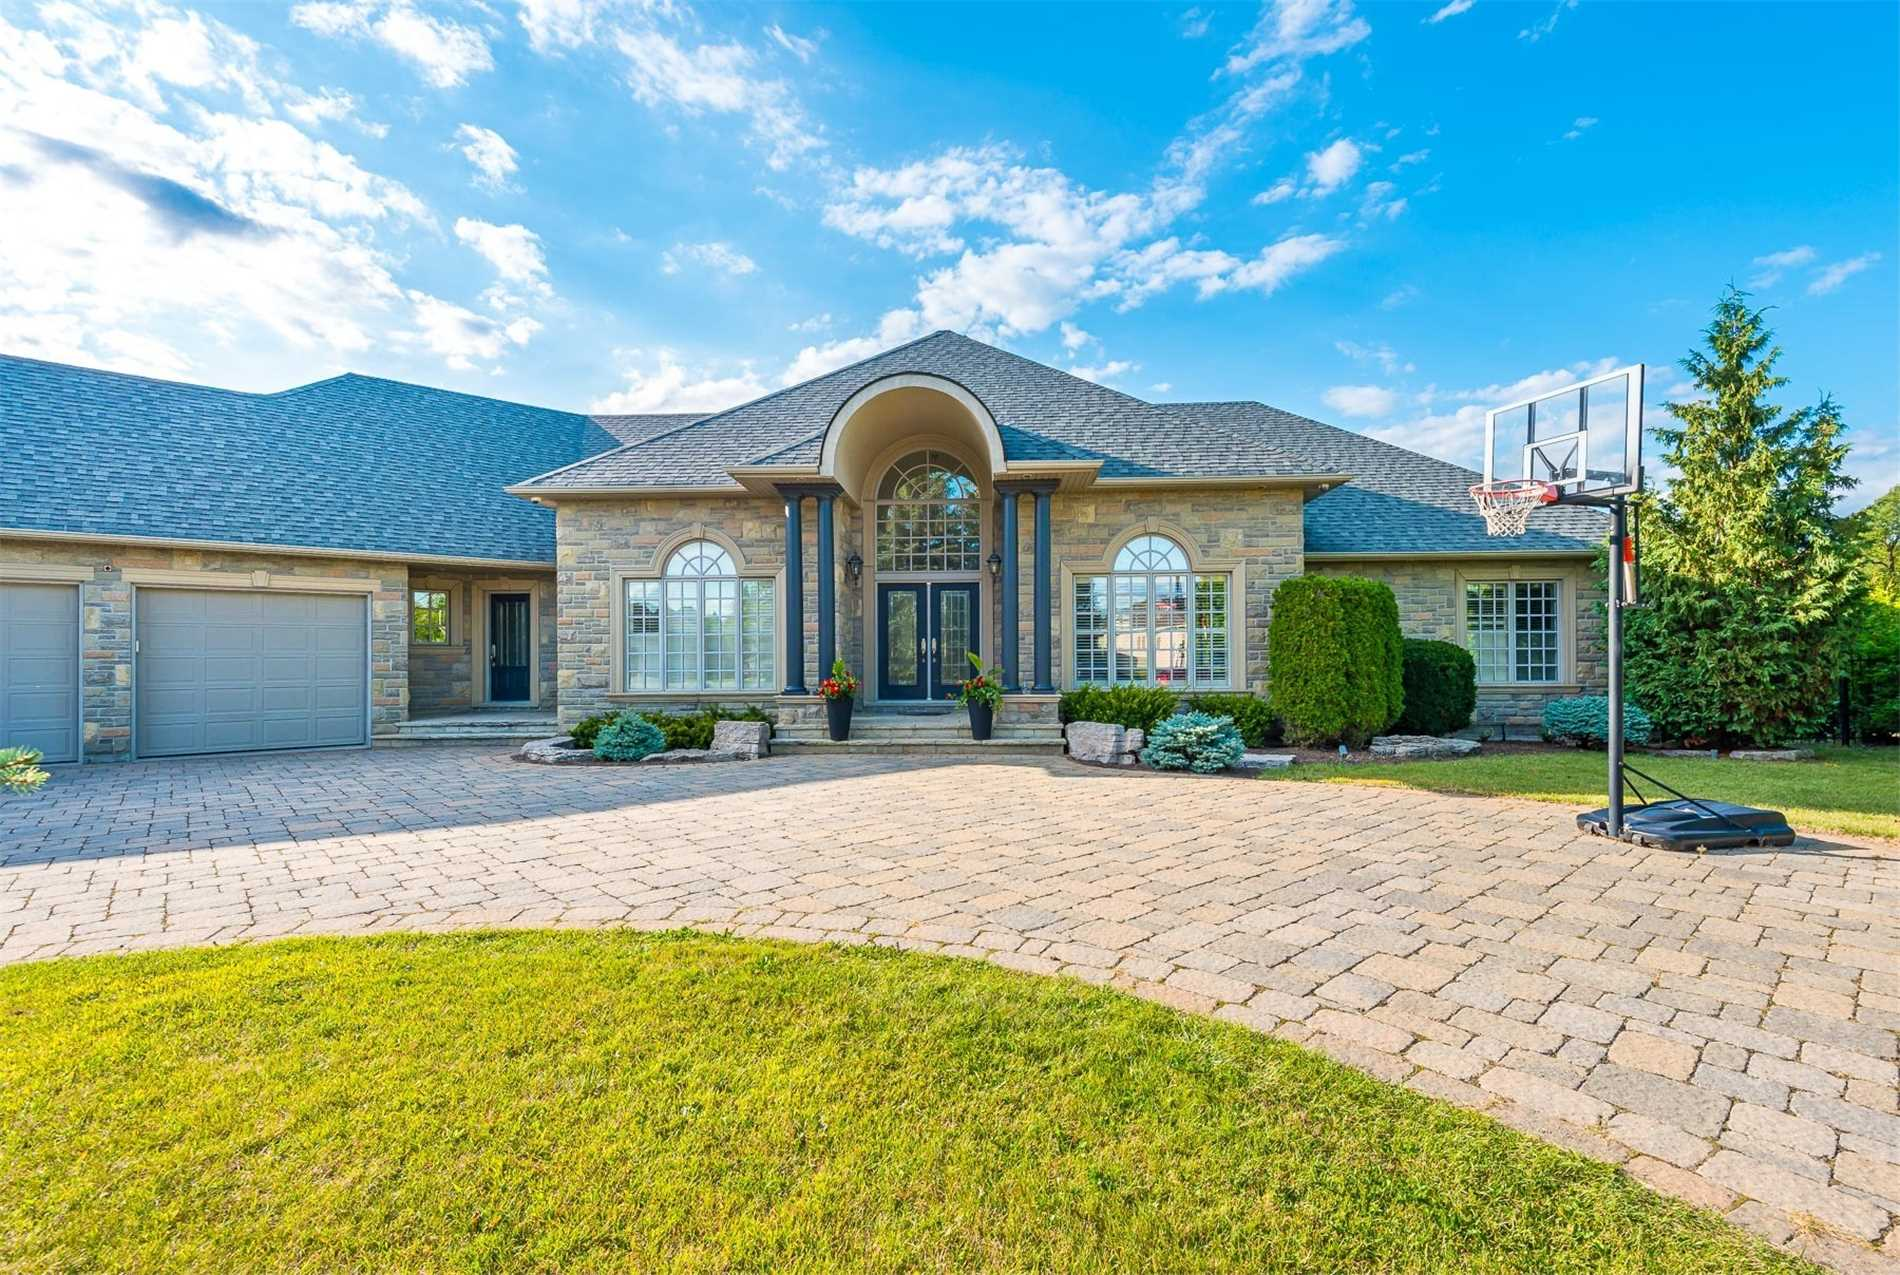 For Sale: 166 Ward Avenue, East Gwillimbury, ON | 4 Bed, 4 Bath House for $1774000.00. See 20 photos!